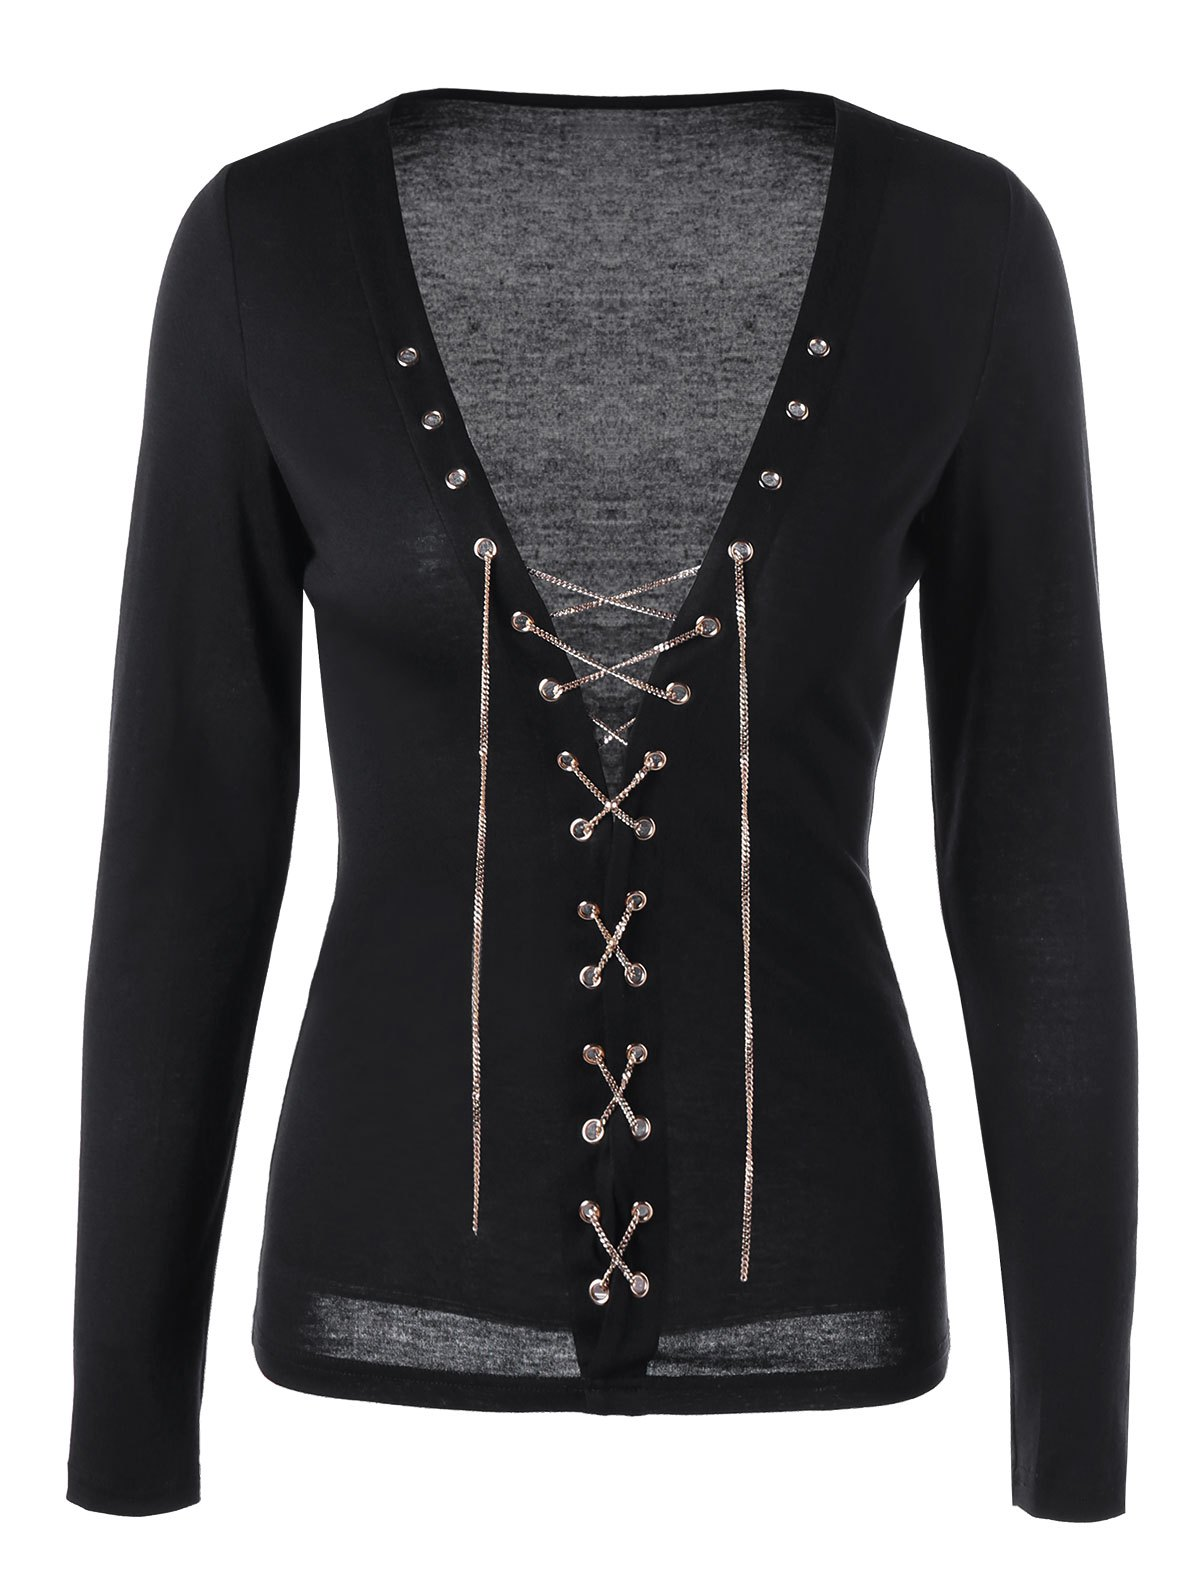 Lace Up Chains Plunge TopWOMEN<br><br>Size: XL; Color: BLACK; Material: Polyester,Spandex; Shirt Length: Regular; Sleeve Length: Full; Collar: Plunging Neck; Style: Fashion; Embellishment: Chains; Pattern Type: Solid Color; Season: Fall,Spring,Summer; Weight: 0.2500kg; Package Contents: 1 x Top;